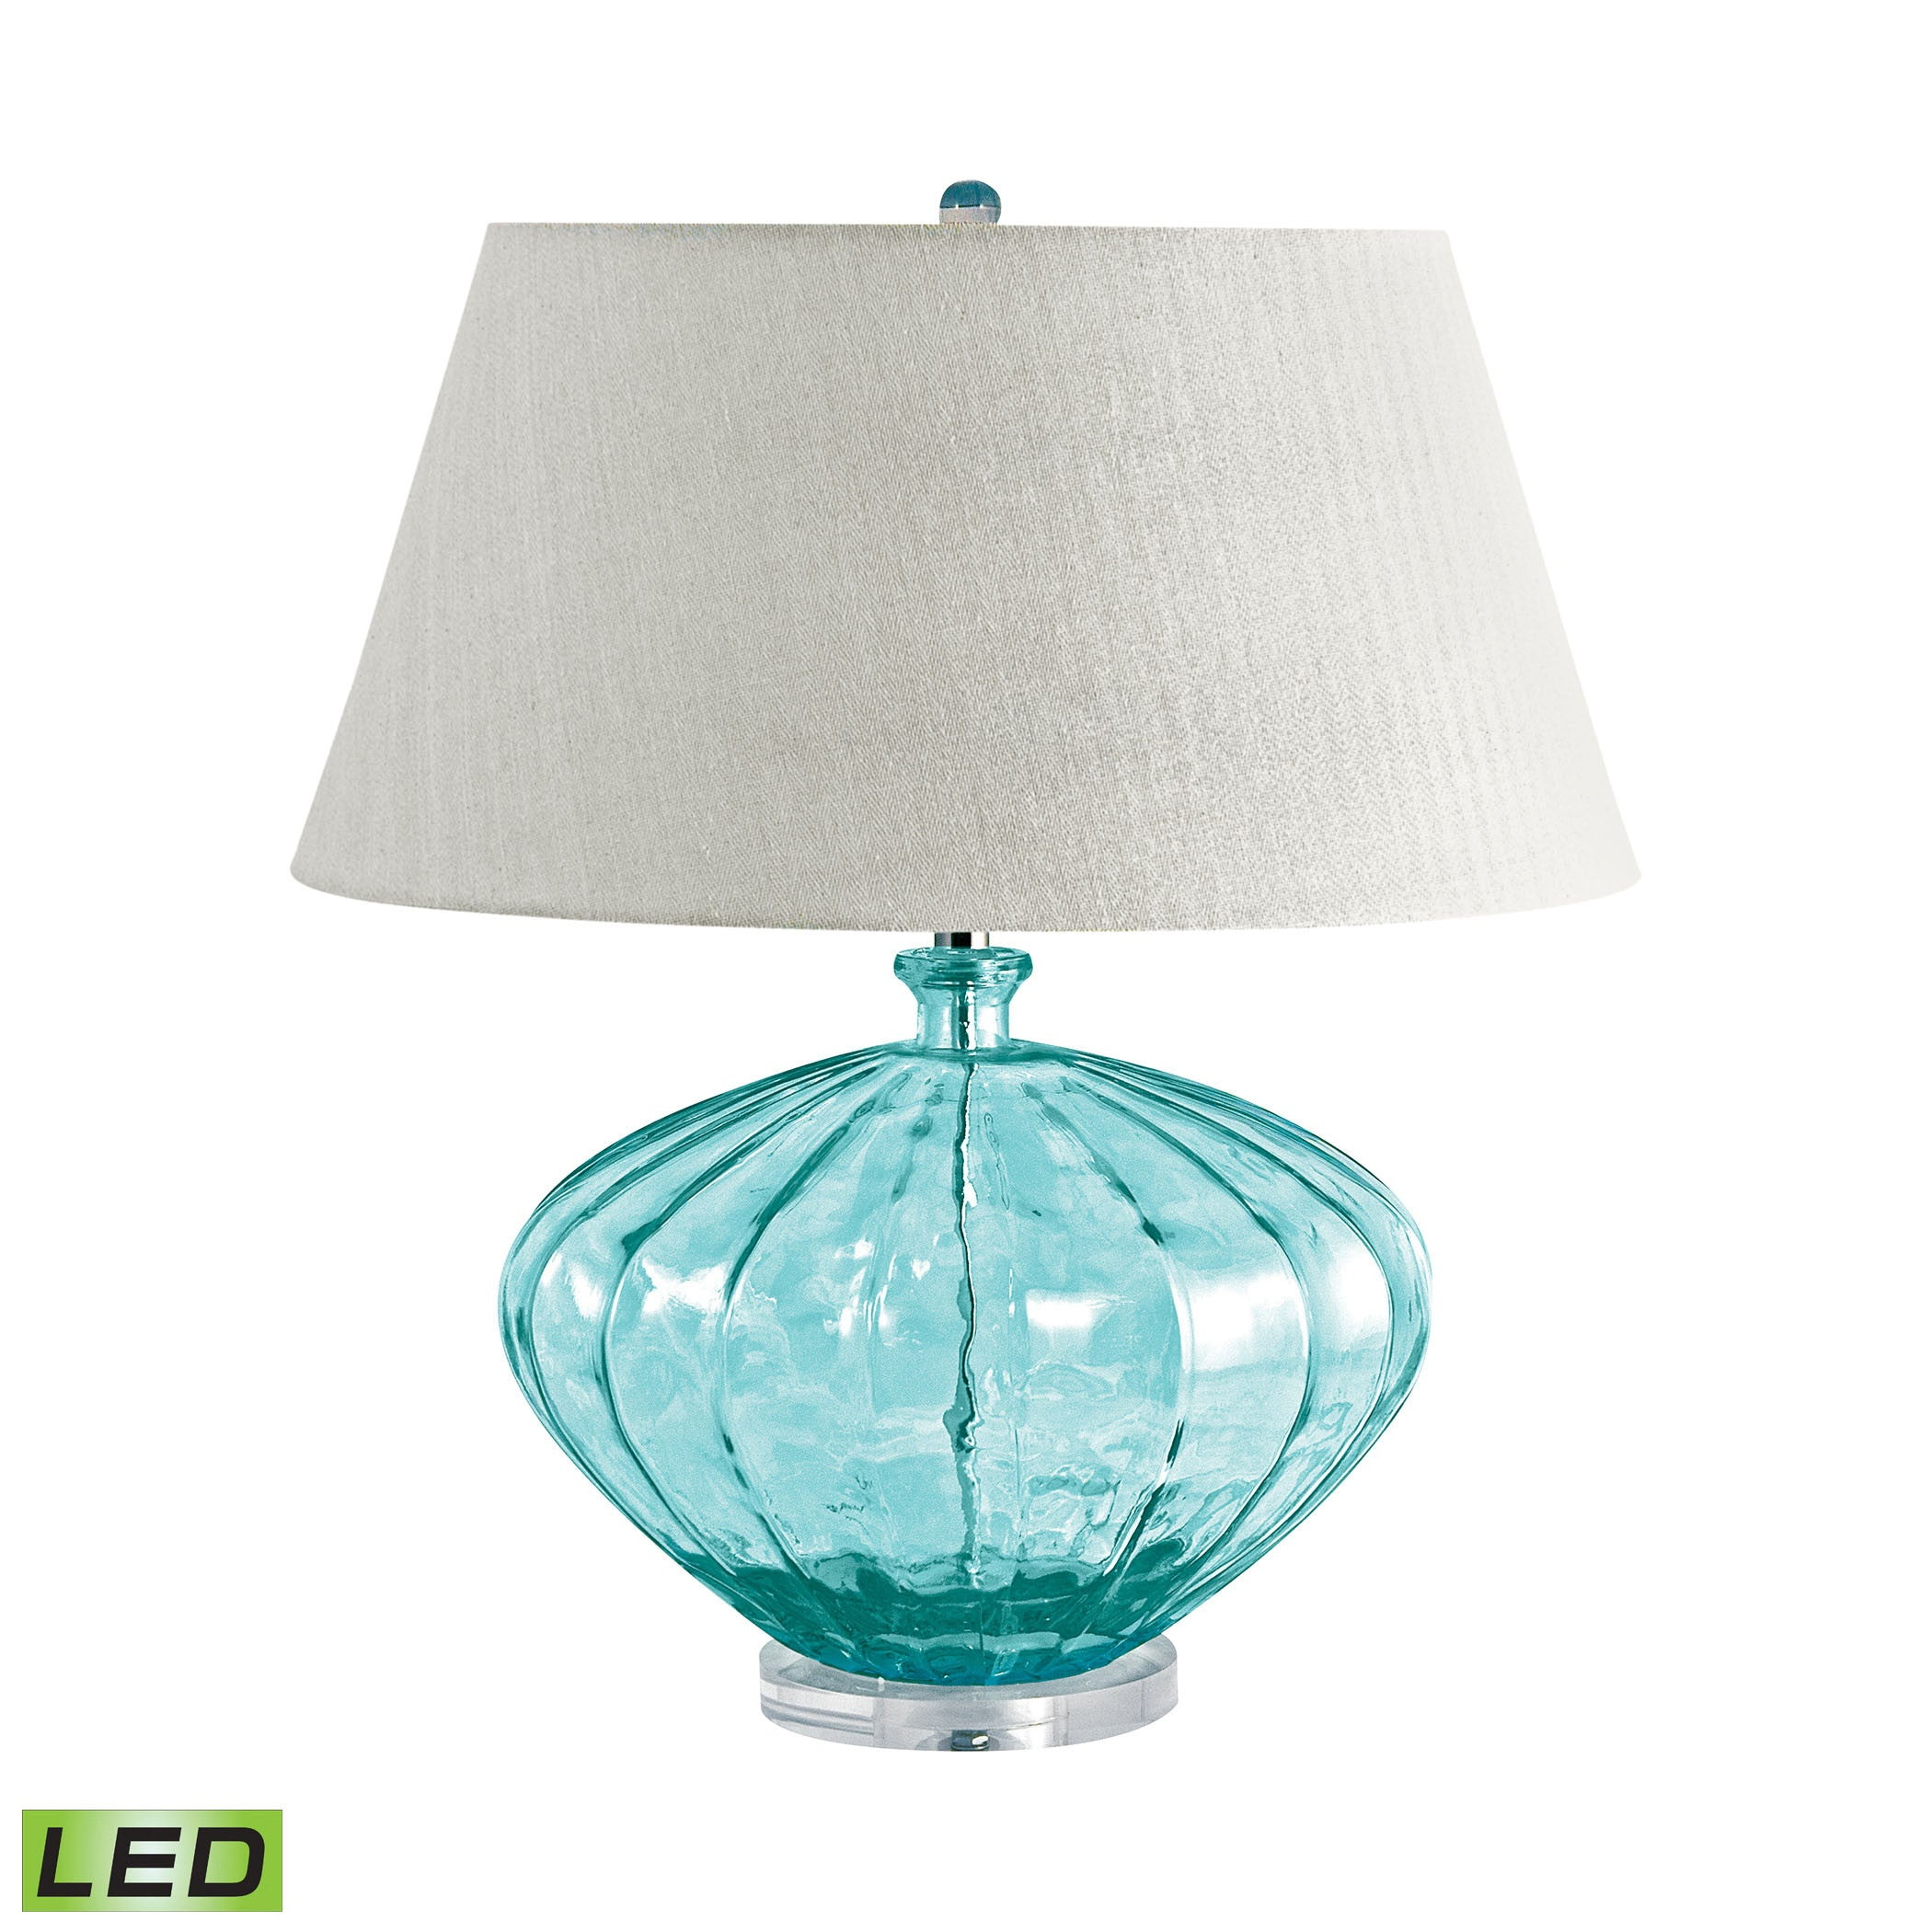 Recycle | Glass | Table | Lamp | Blue